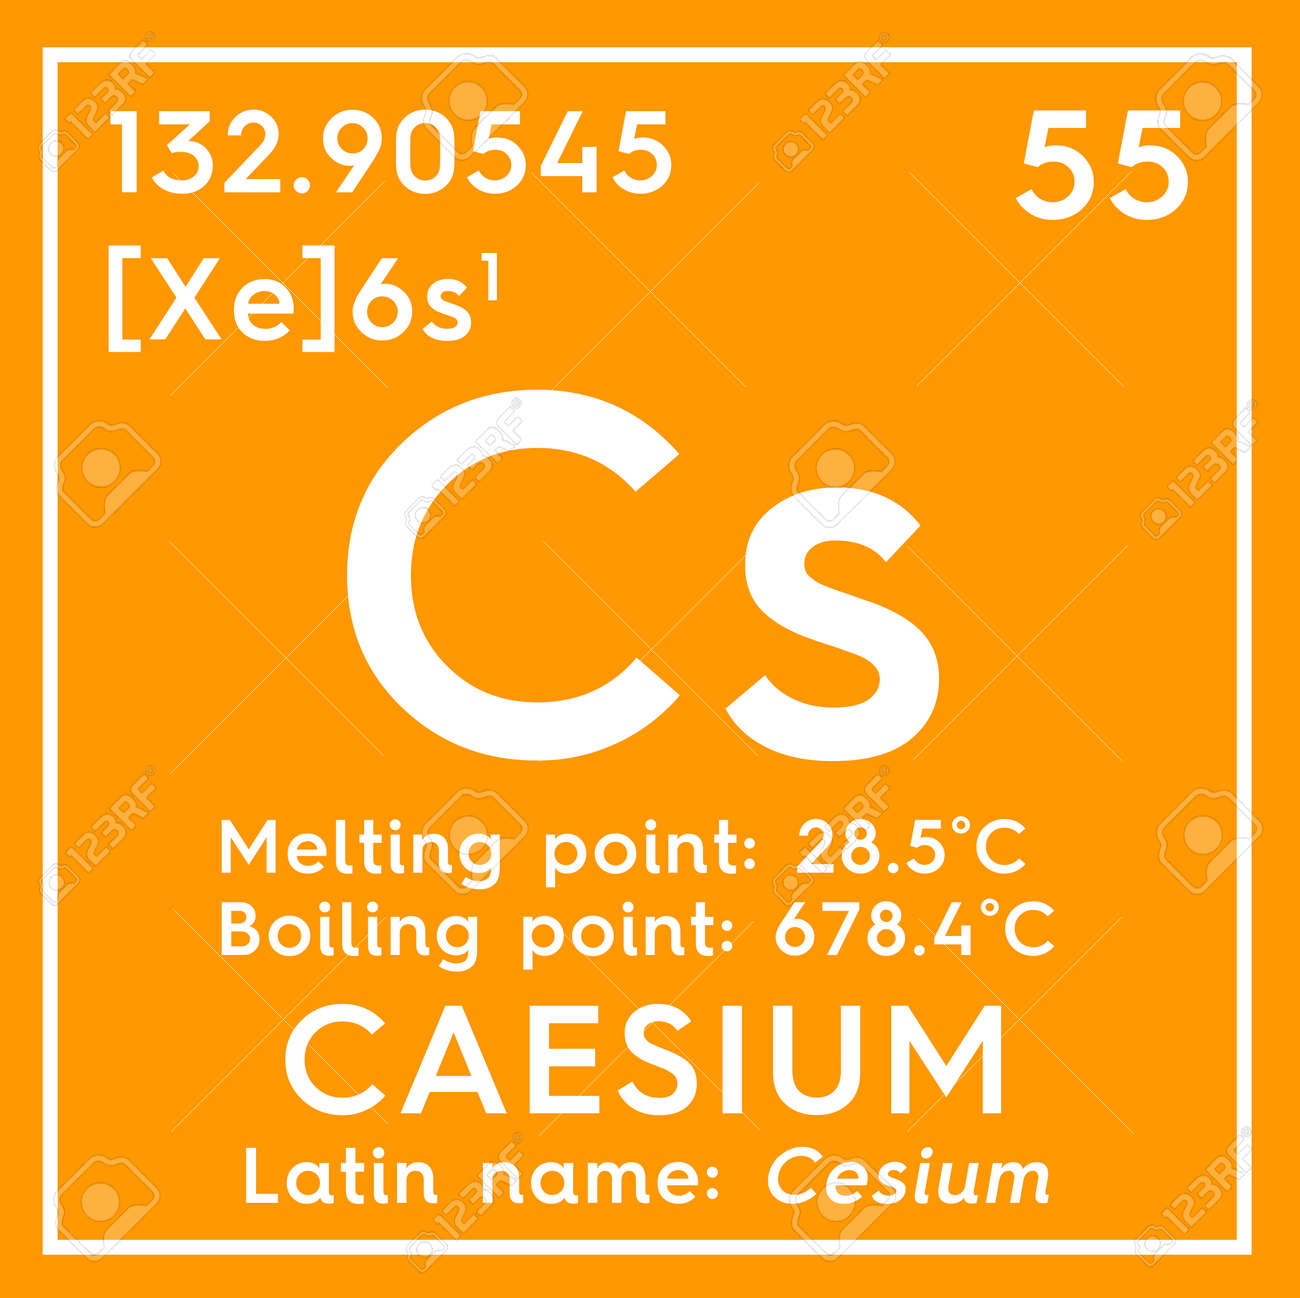 Hg symbol periodic table choice image periodic table images symbol for mercury on periodic table image collections periodic periodic table zirconium choice image periodic table gamestrikefo Images